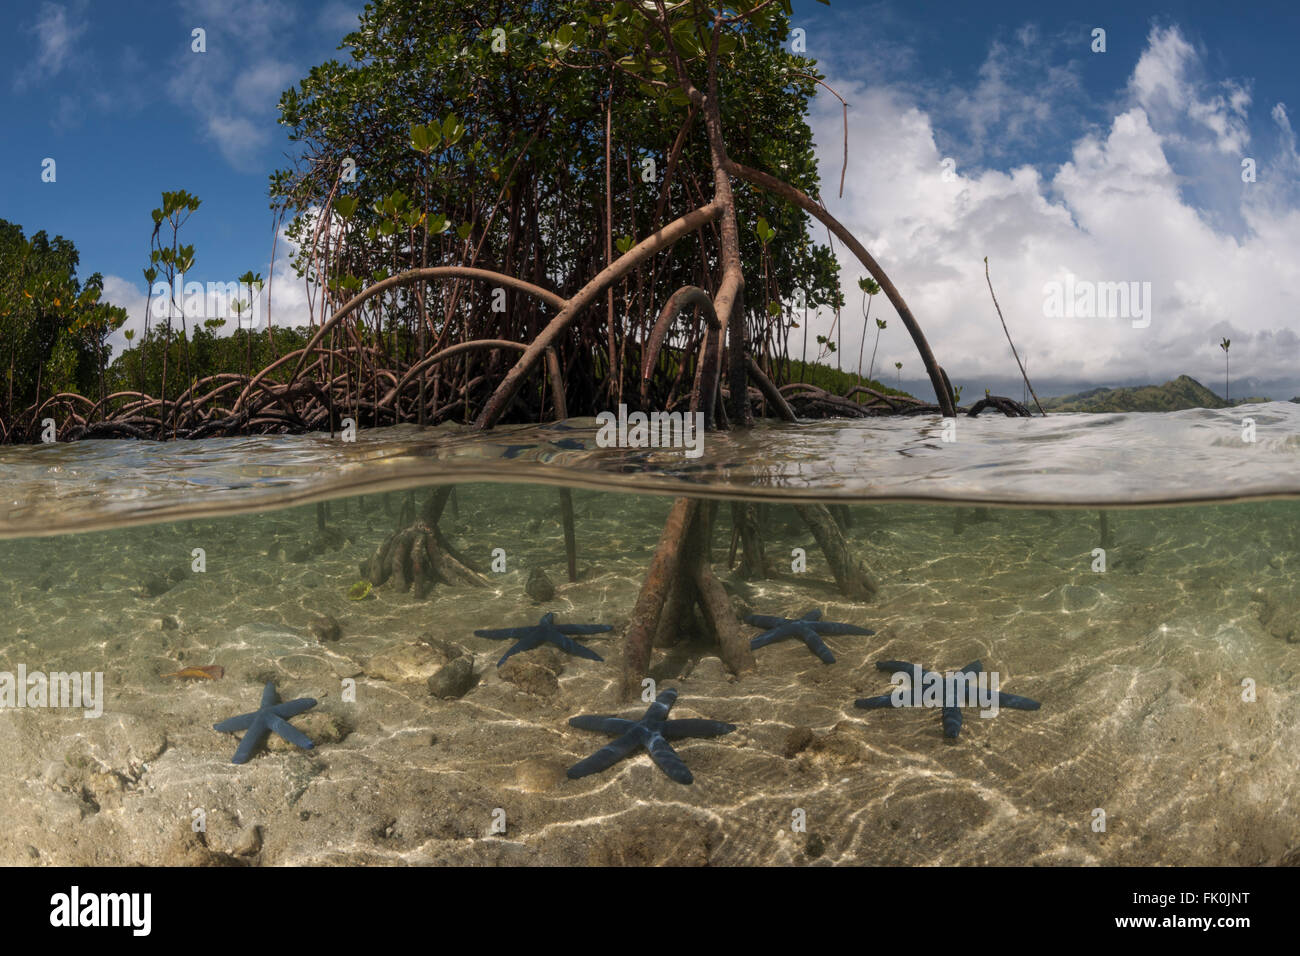 Split level - blue starfish (Linckia laevigata) scattered in the shallow white sands and a mangrove tree with its - Stock Image